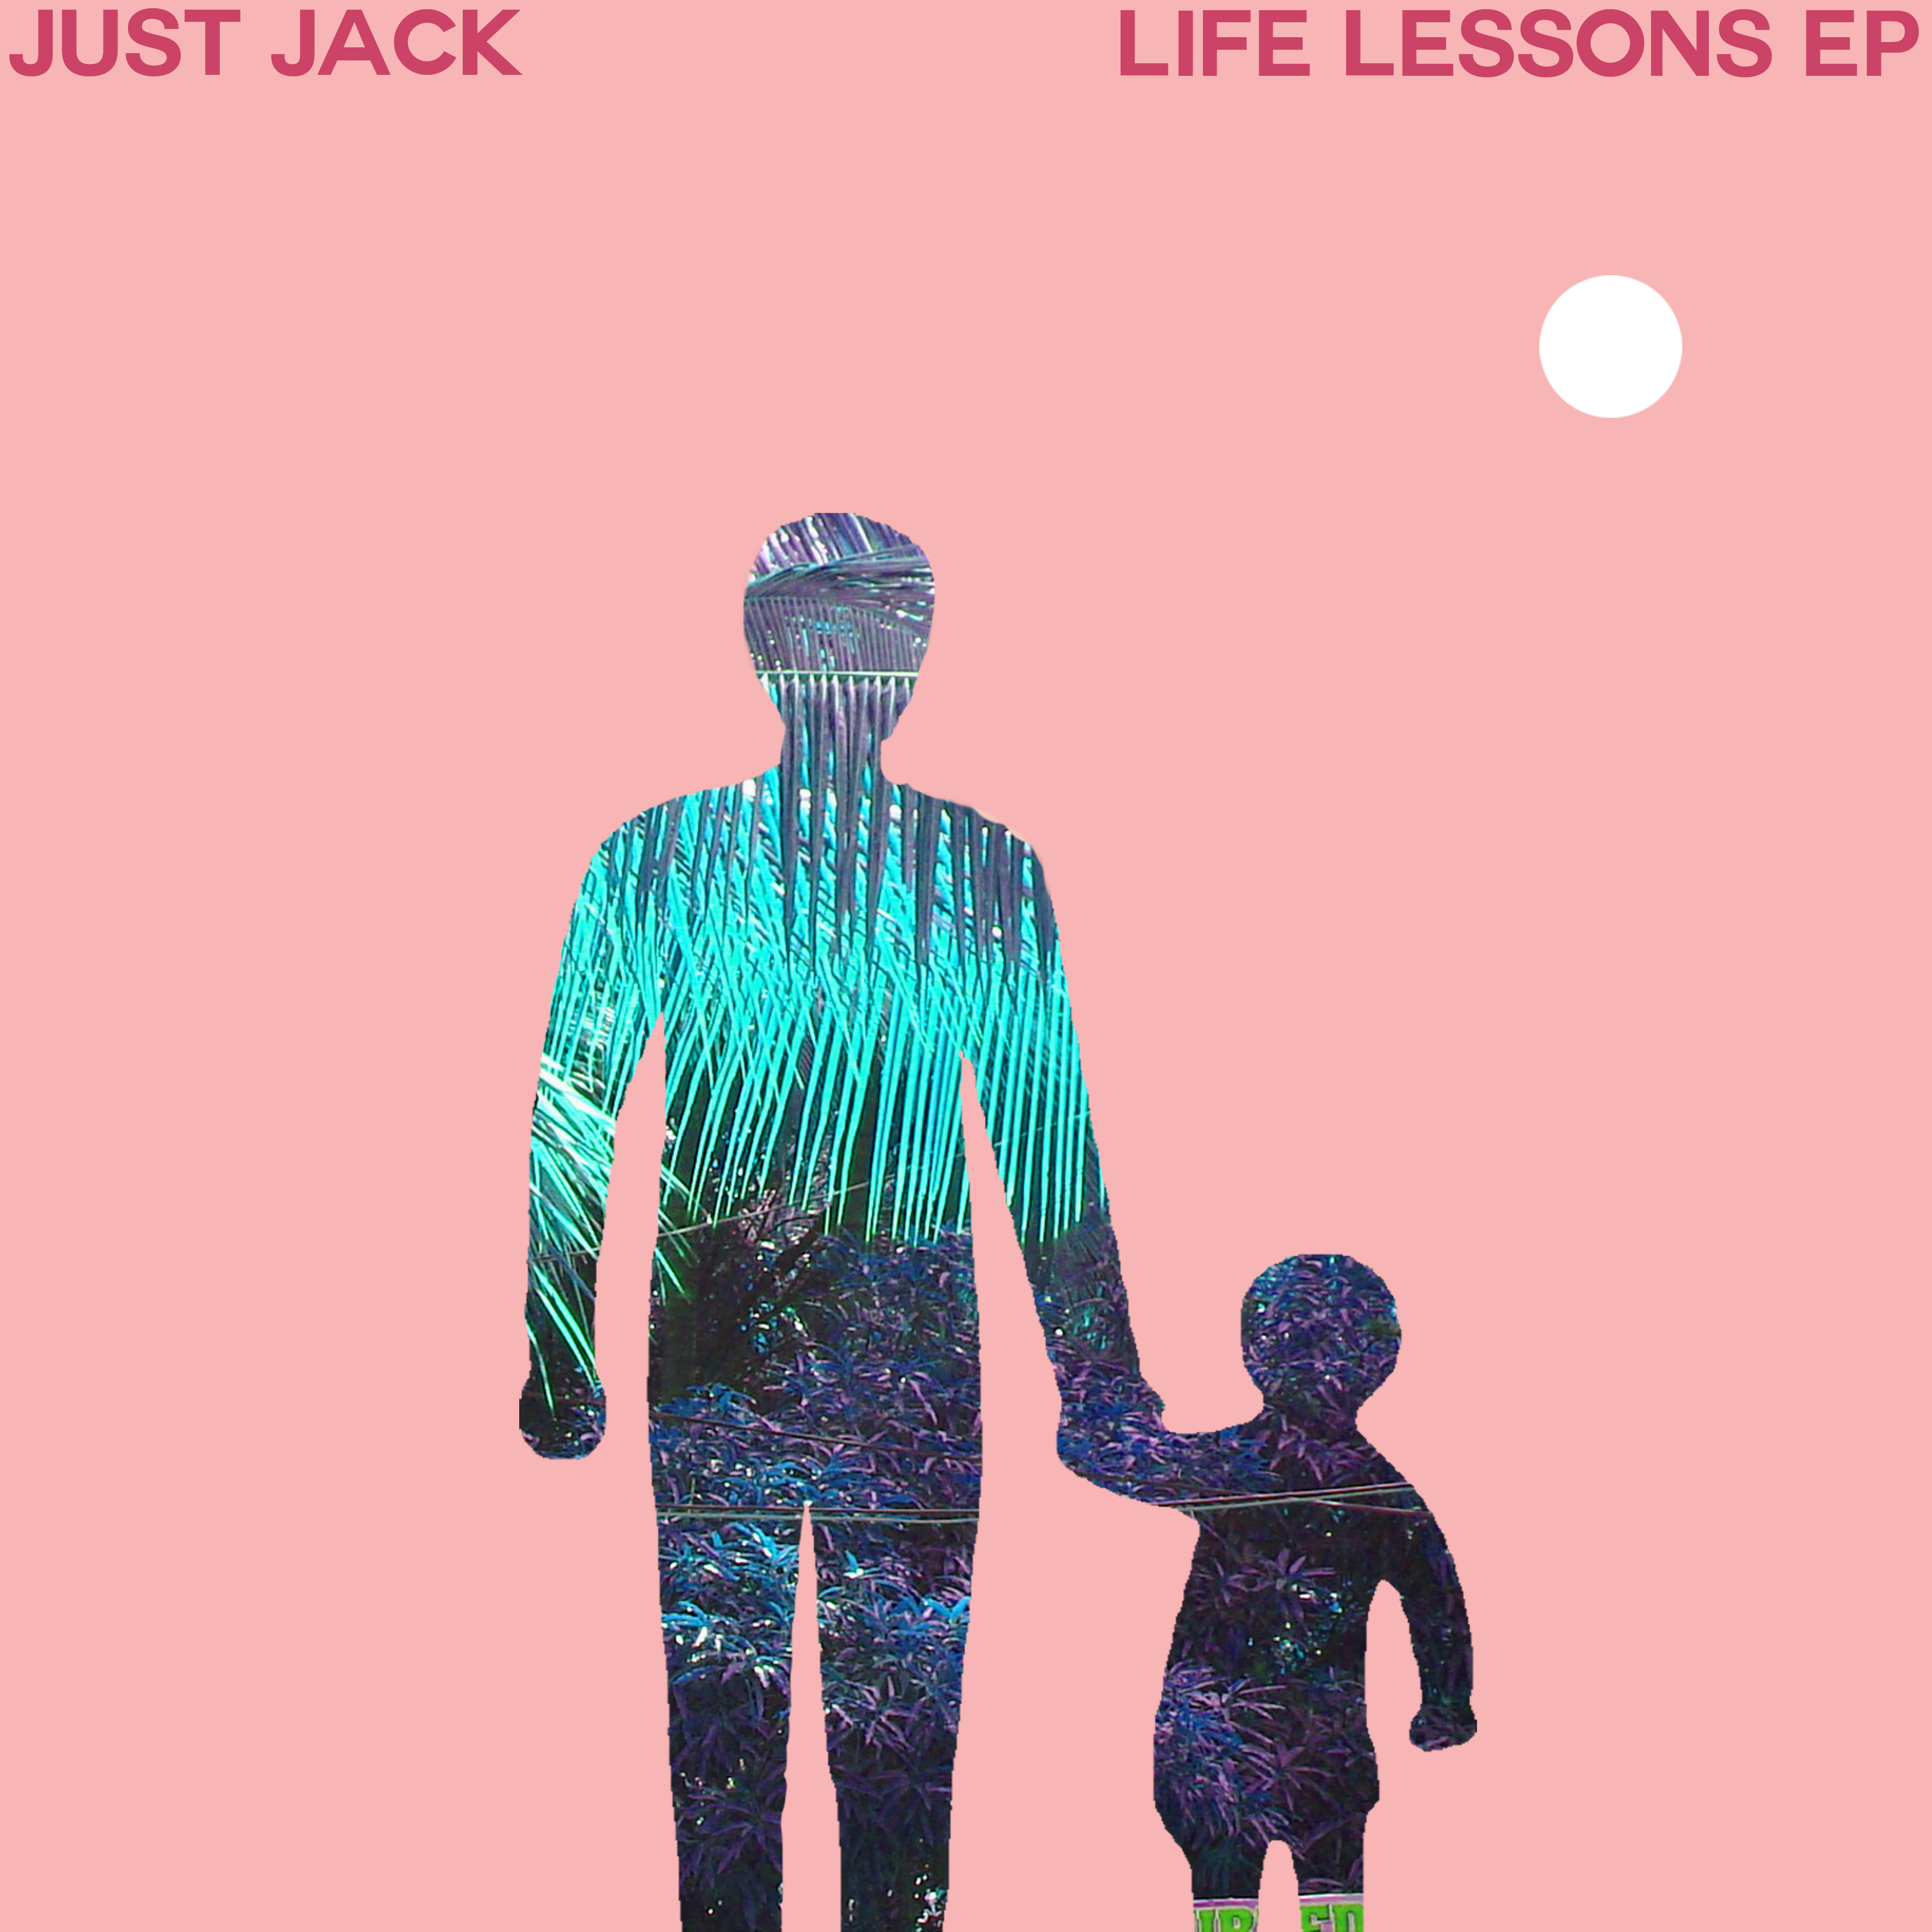 Life Lessons EP - Download - Just Jack